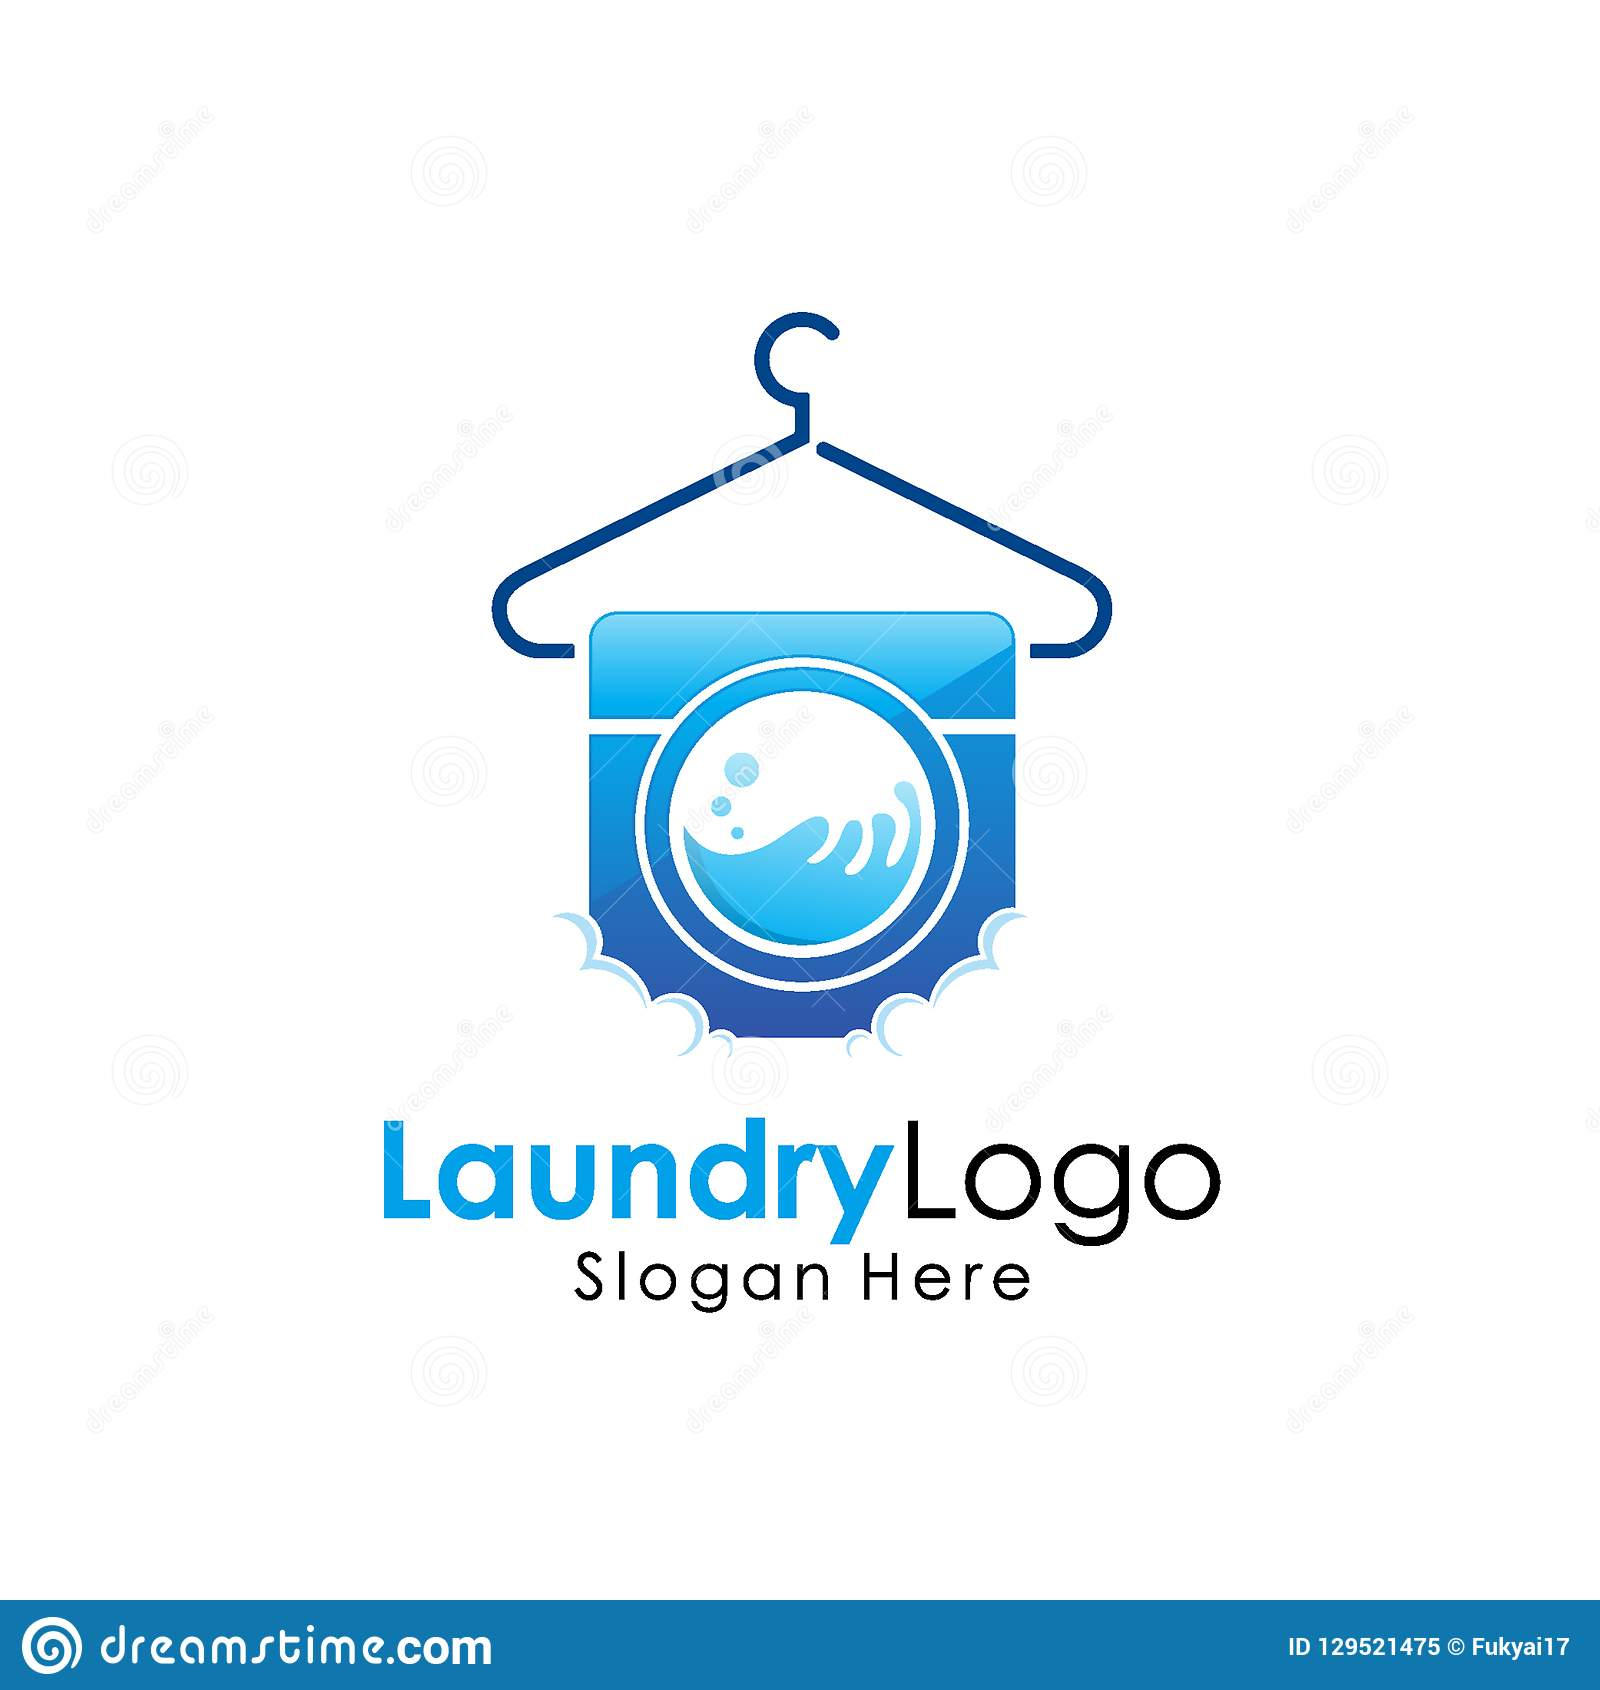 clean laundry logo design concept stock illustration illustration of clothes cleanup 129521475 https www dreamstime com clean laundry logo design concept image129521475